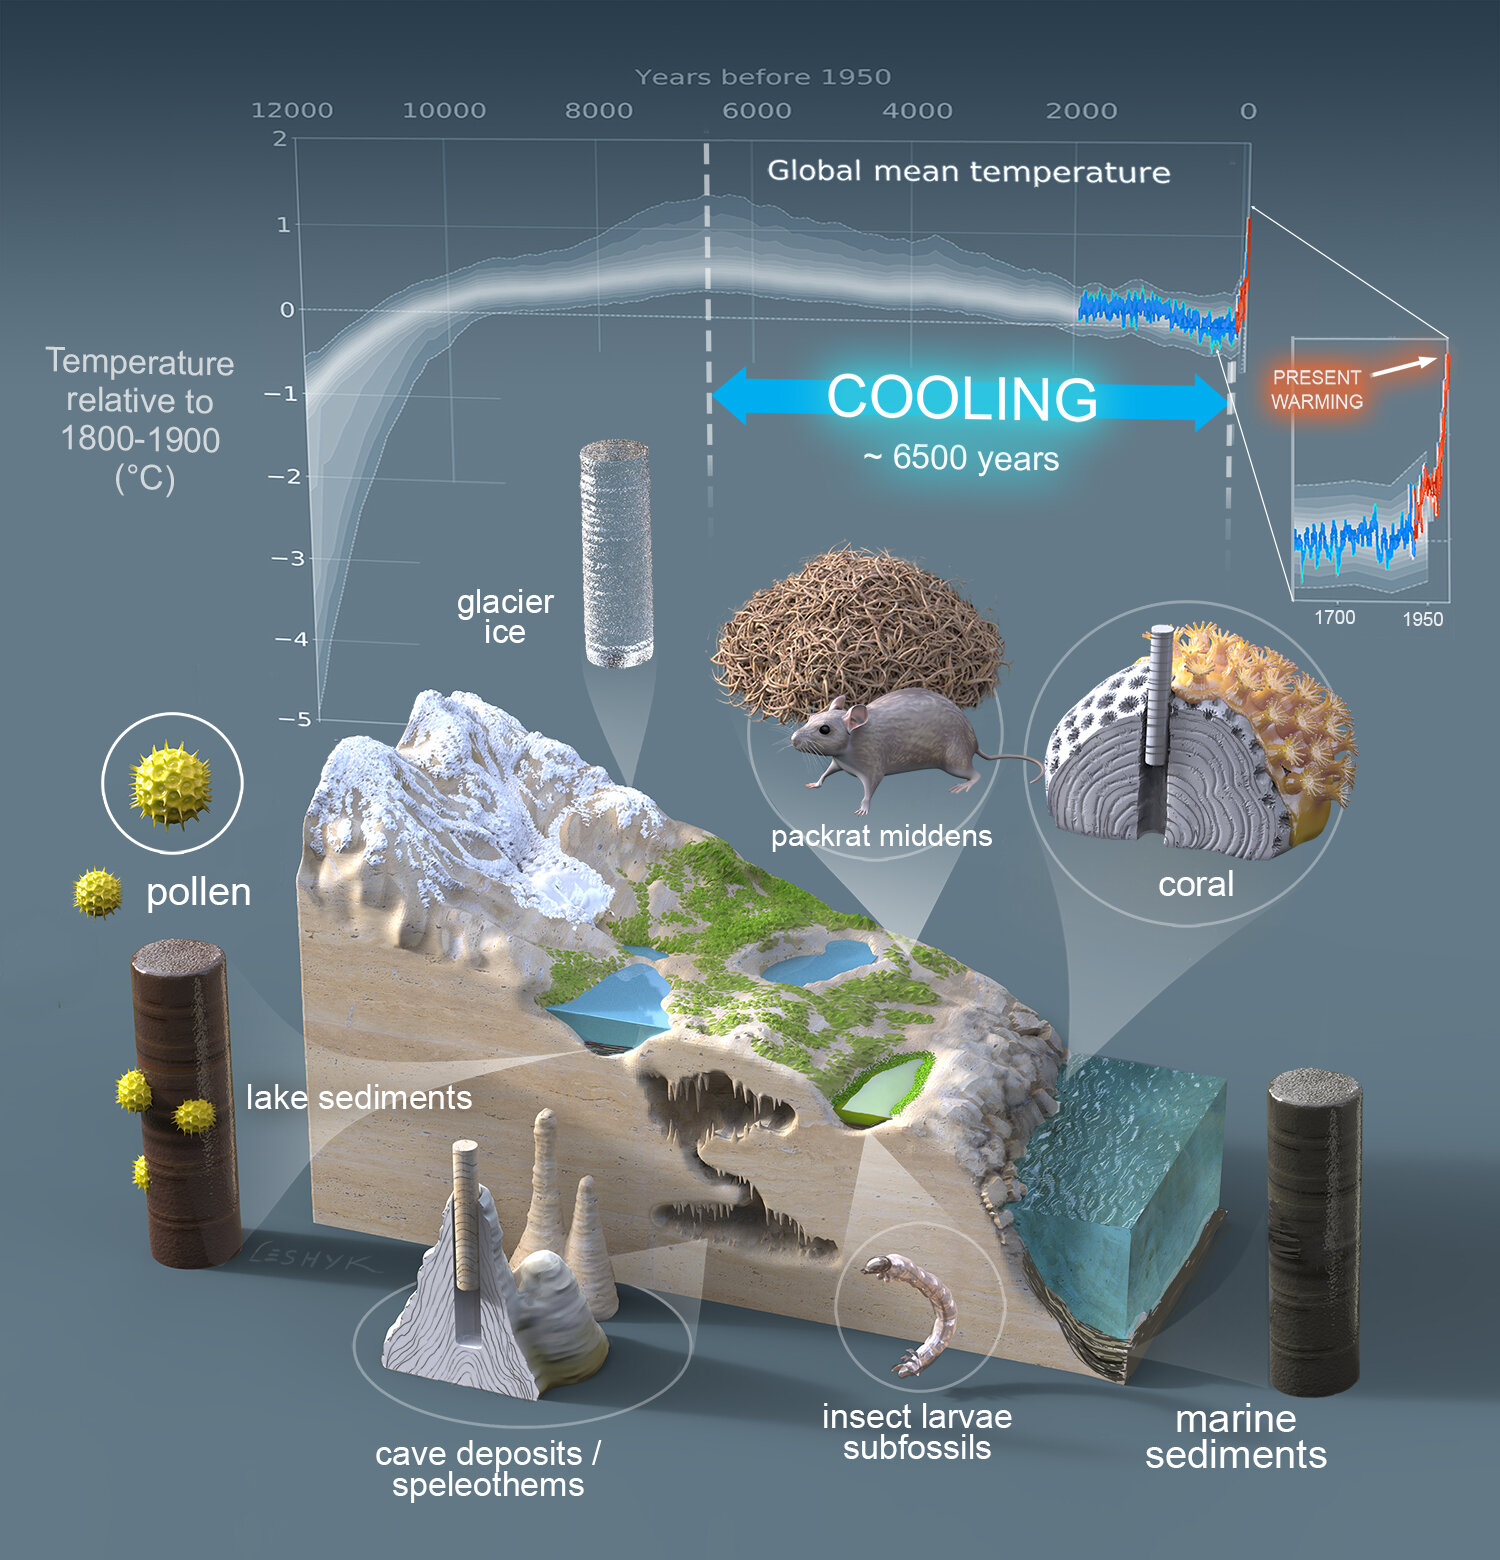 Major new paleoclimatology study shows global warming has upended 6,500 years of cooling